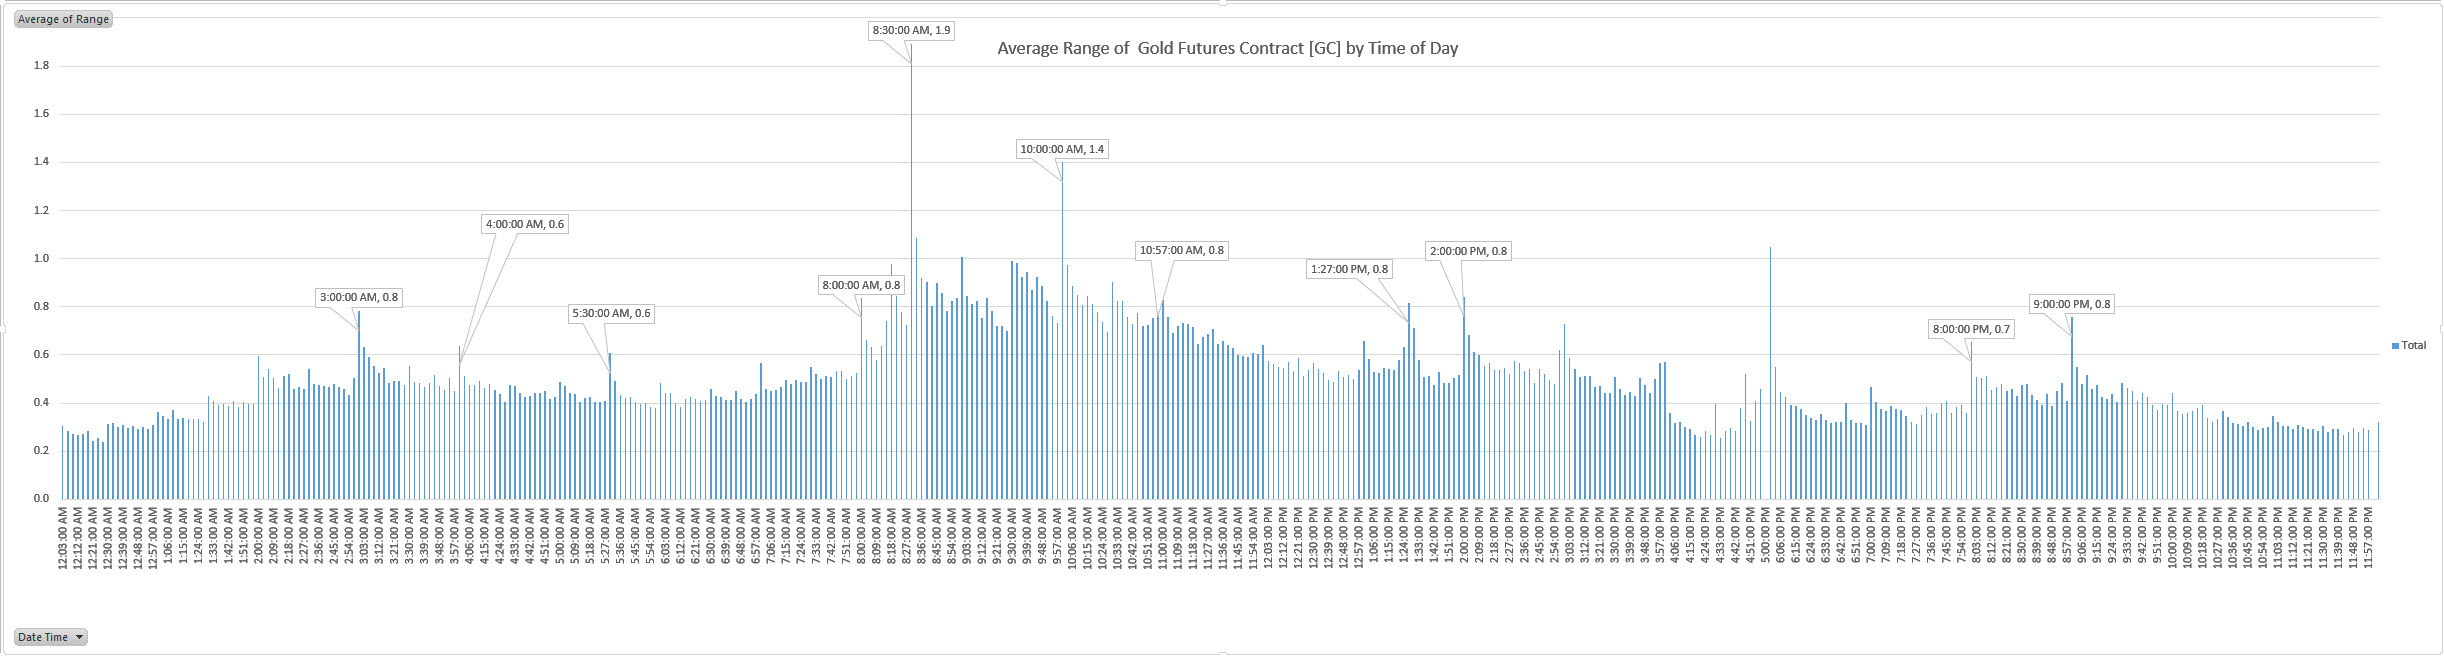 Average_Range_of__Gold_Futures_Contract__GC__by_Time_of_Day.jpg